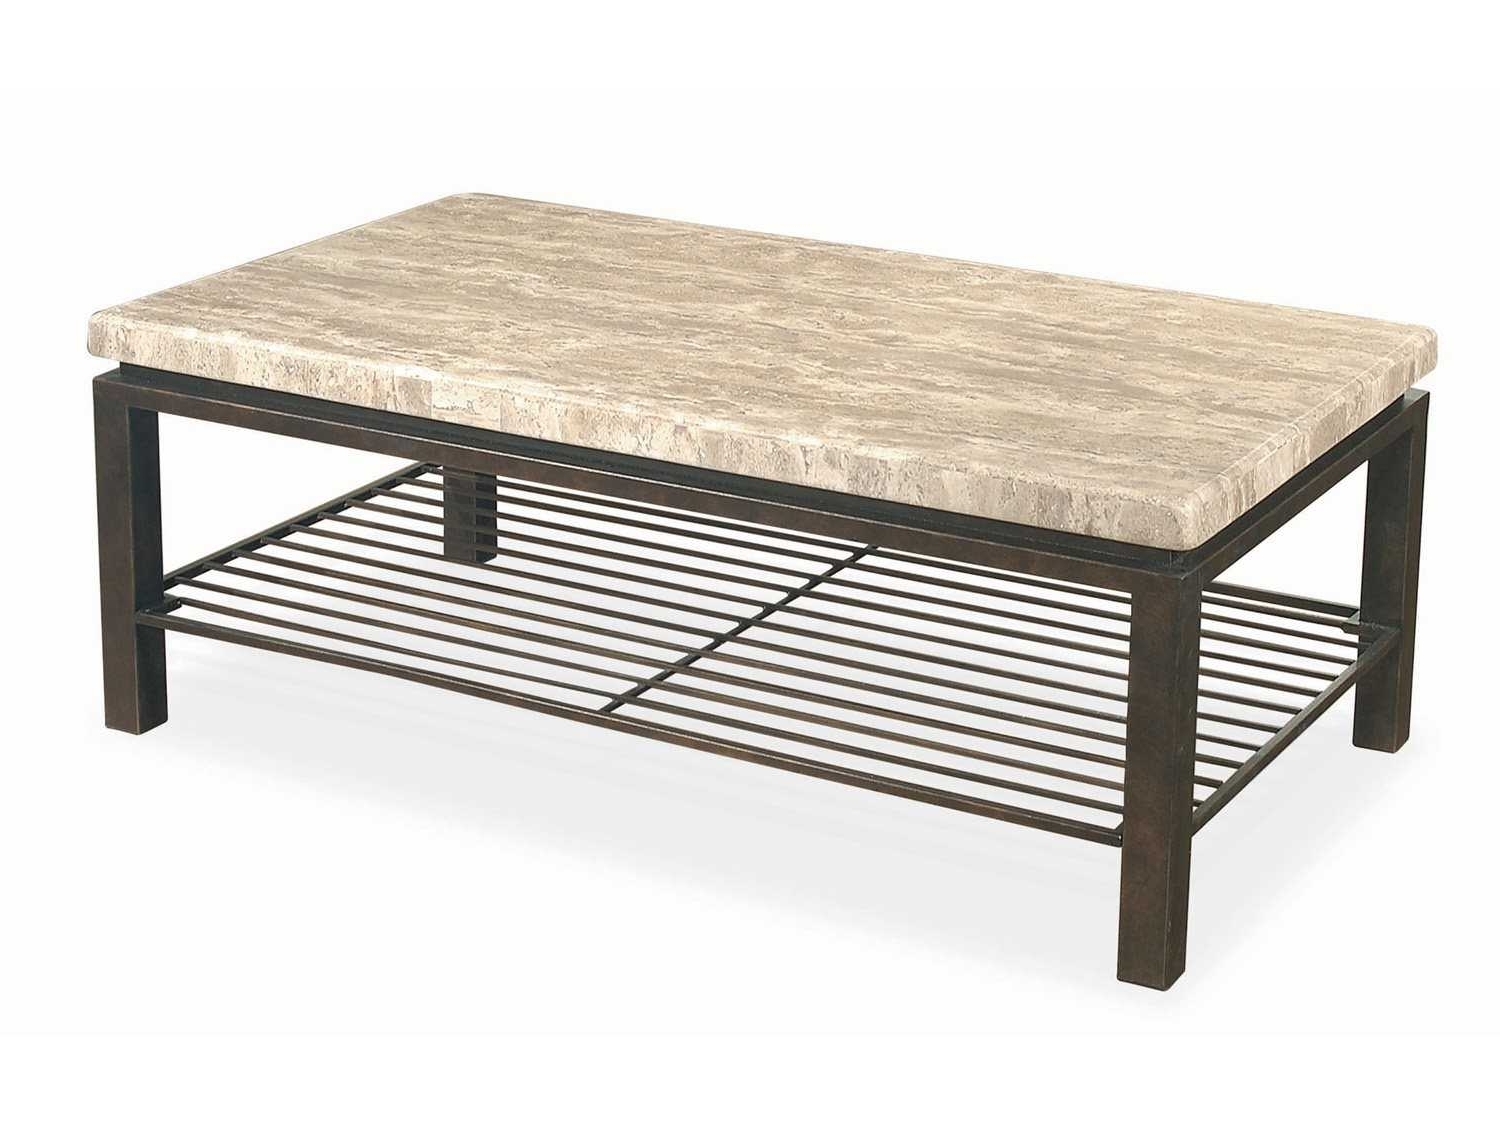 Coffee Tables & Ottoman Coffee Tables For Sale (View 2 of 3)